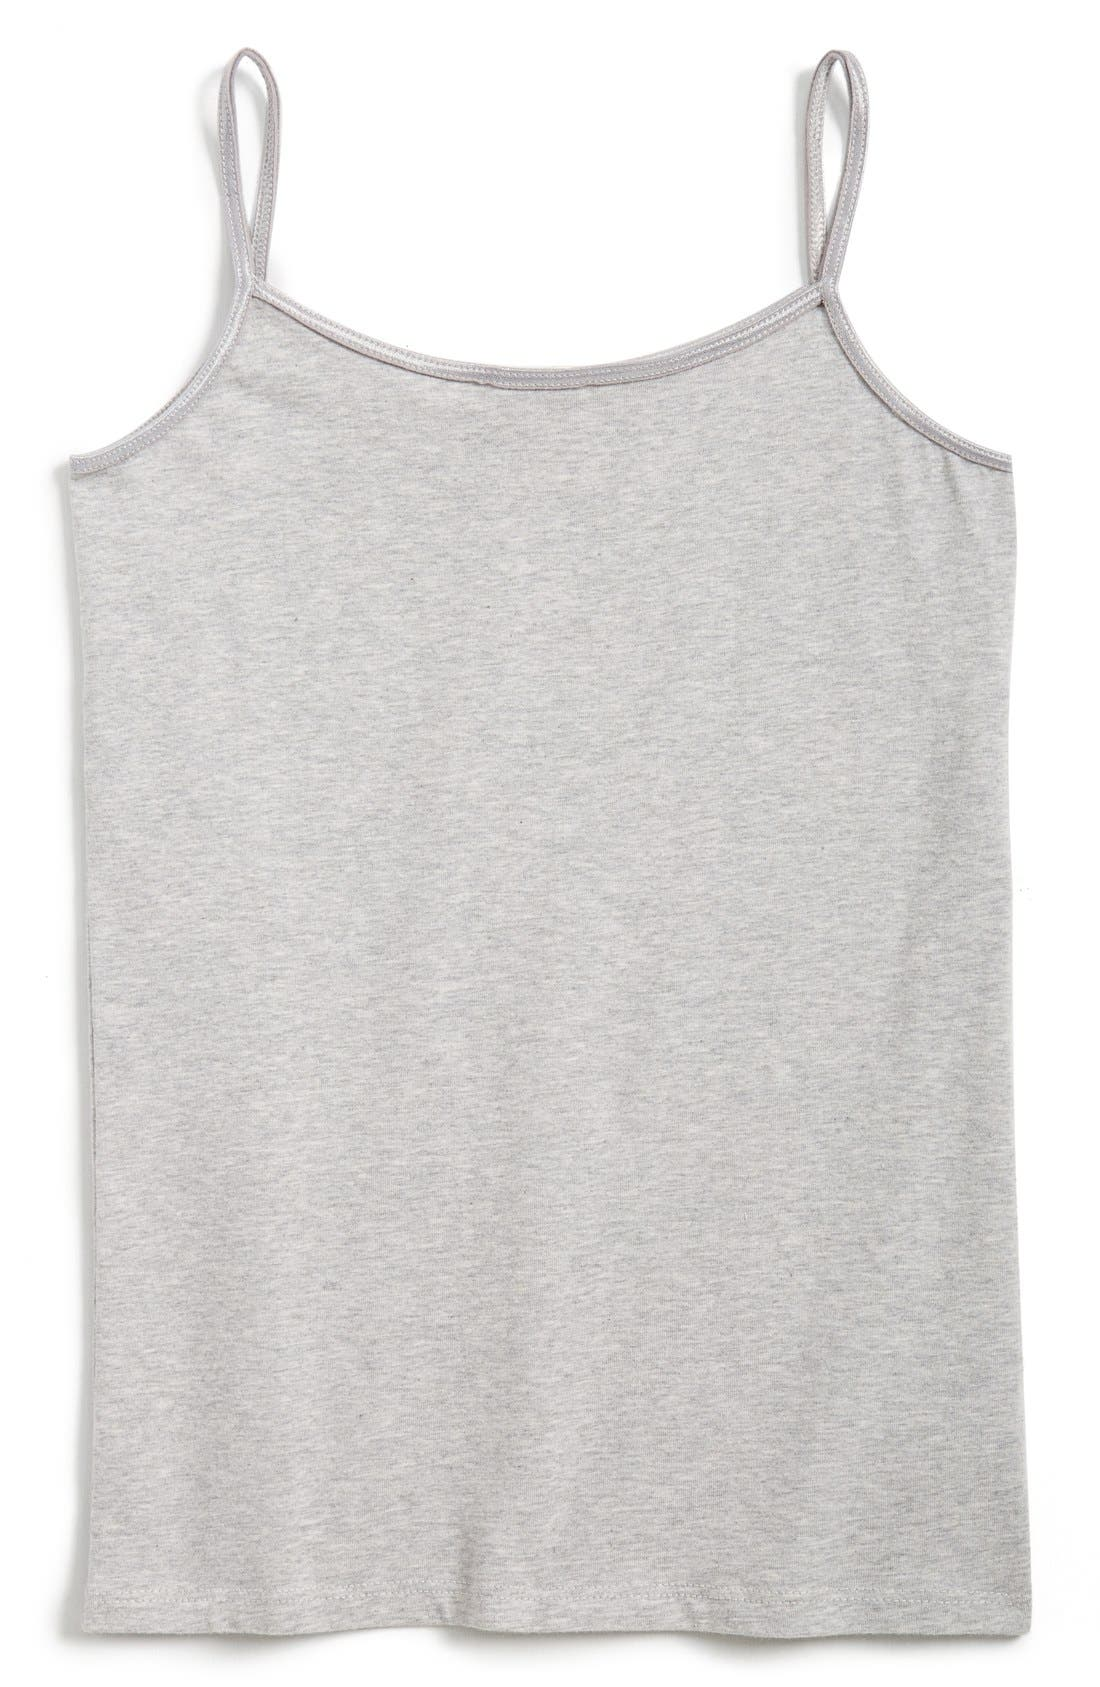 TUCKER + TATE Heathered Long Camisole